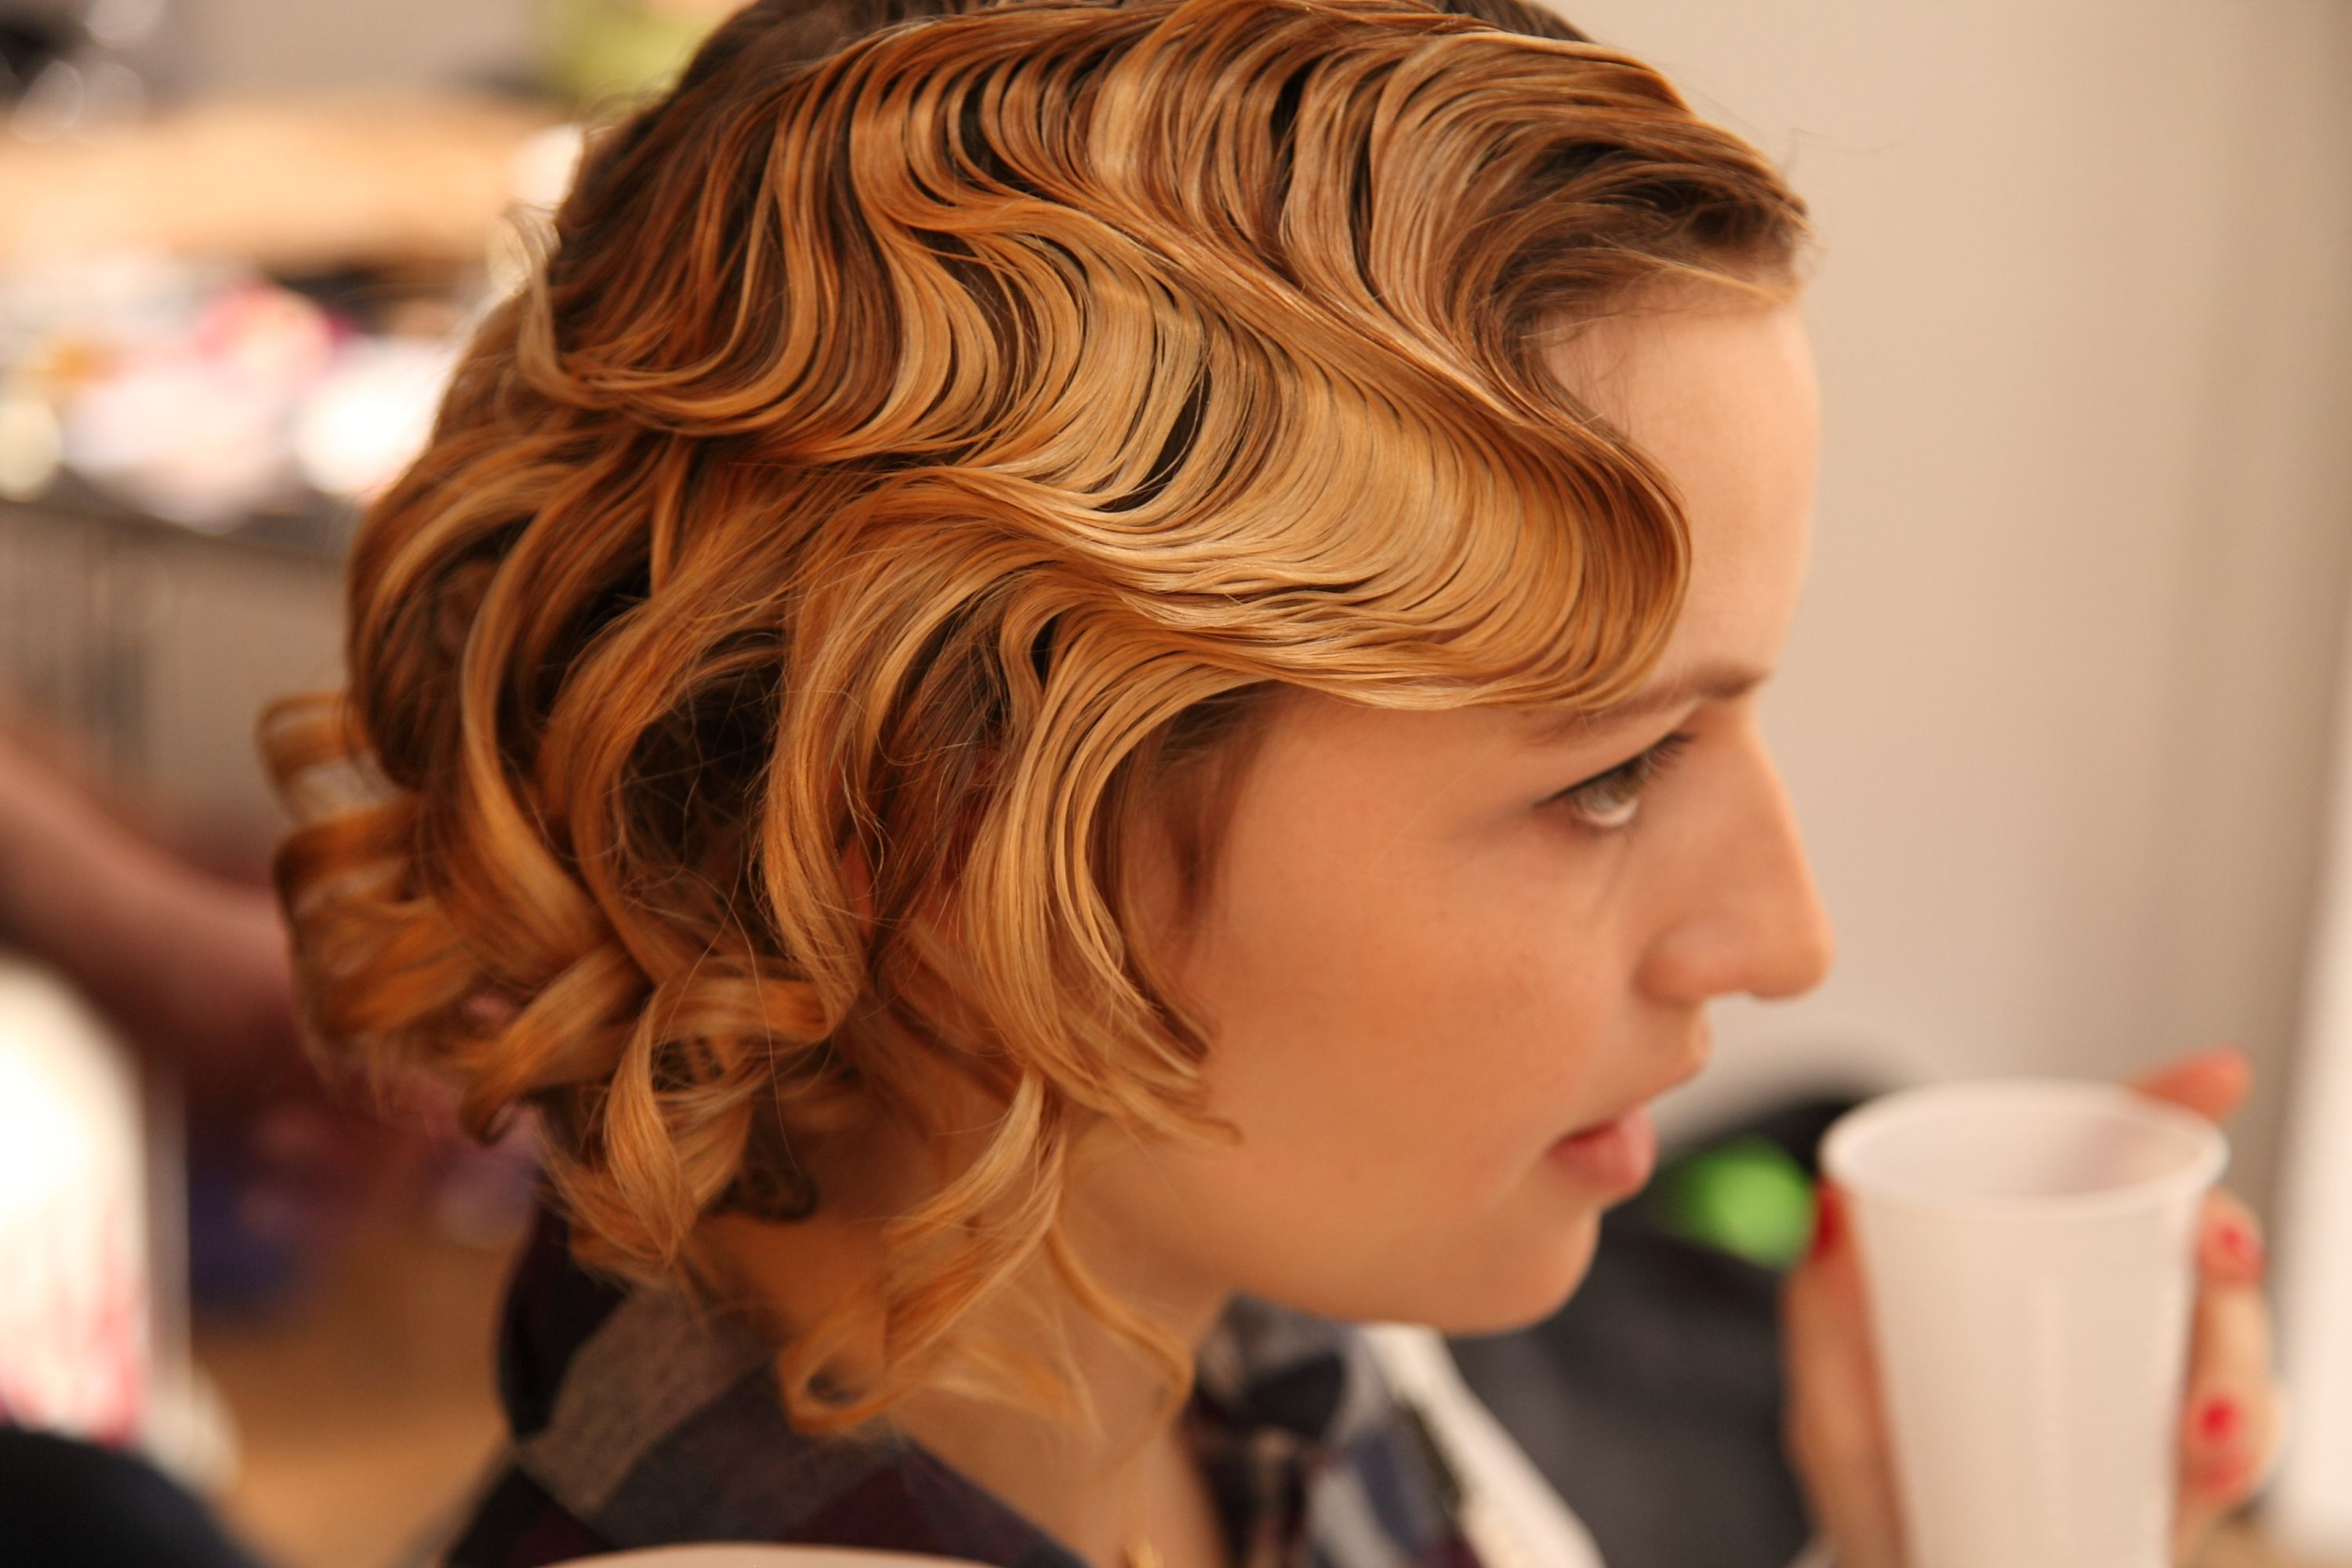 1000 Images About Coiffure On Pinterest Bijoux Wedding Hairs